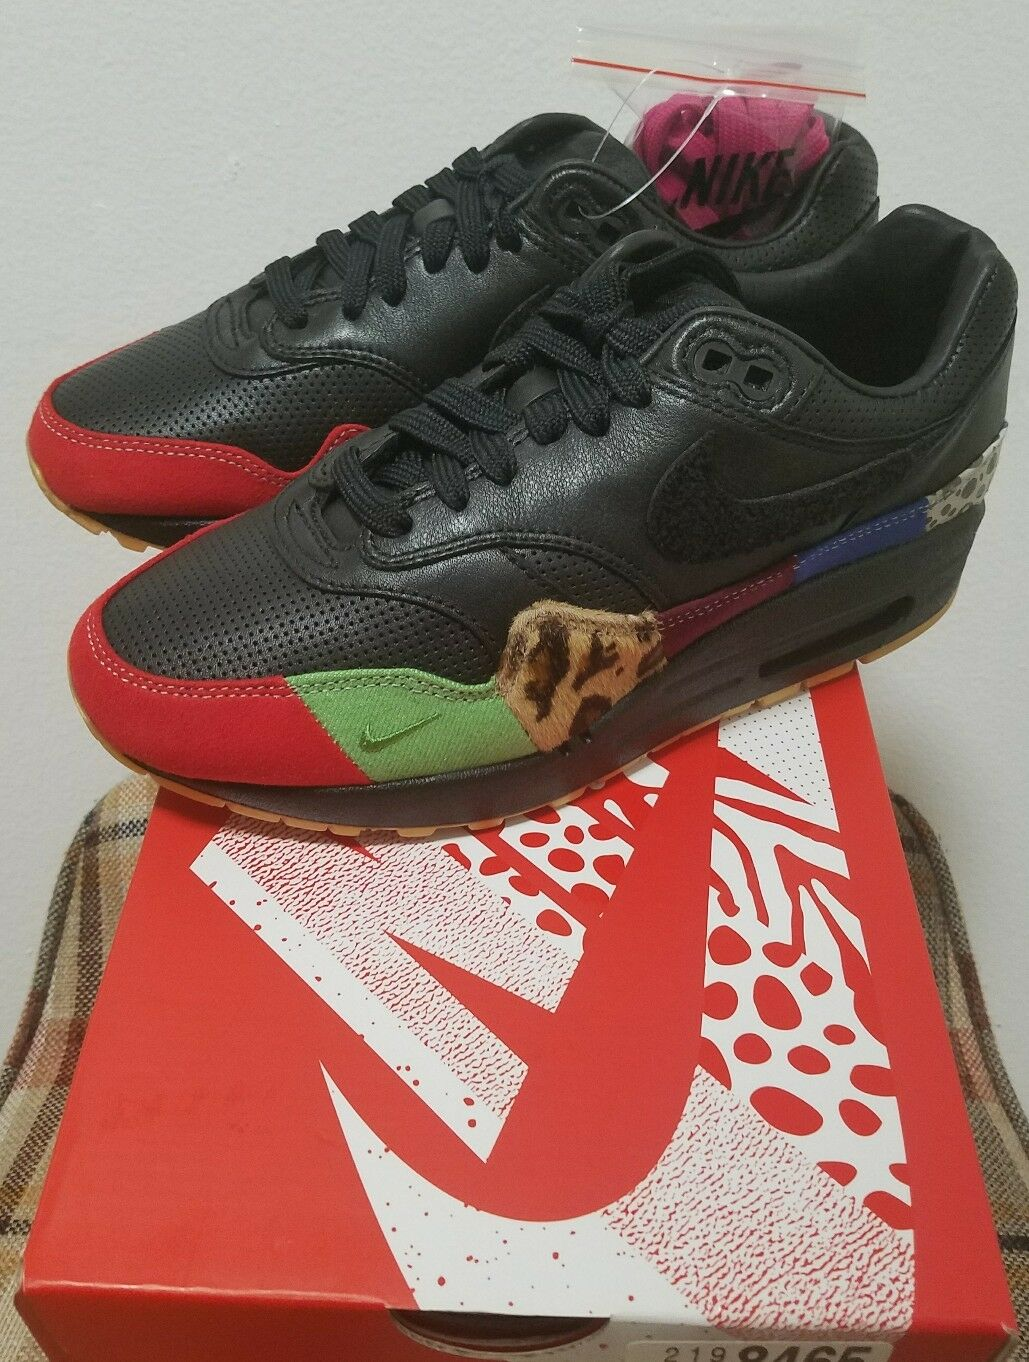 official photos 96ffd 78a4e ... Nike Air Max 1 Master comodo Wild Wild Wild Casual Shoes f4fc63 ...